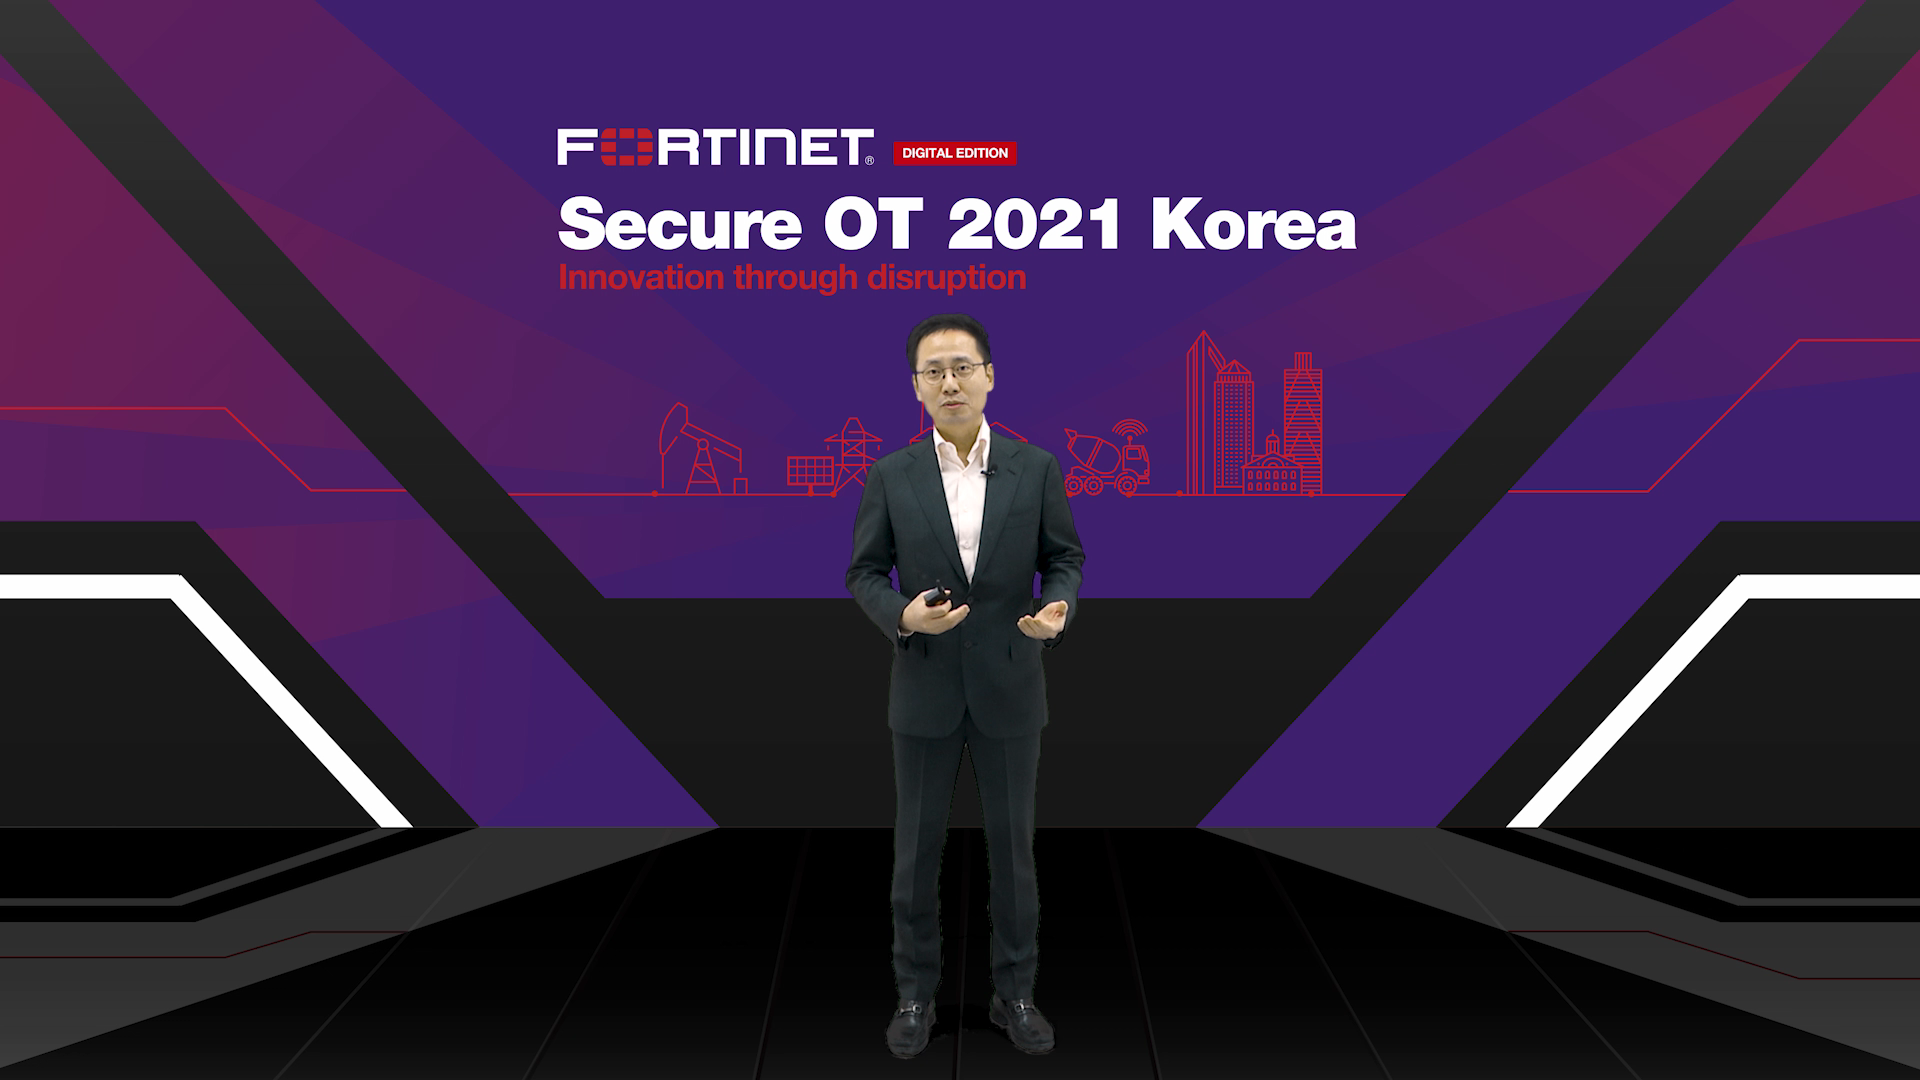 fortinet-secure-ot-summit-image1.png